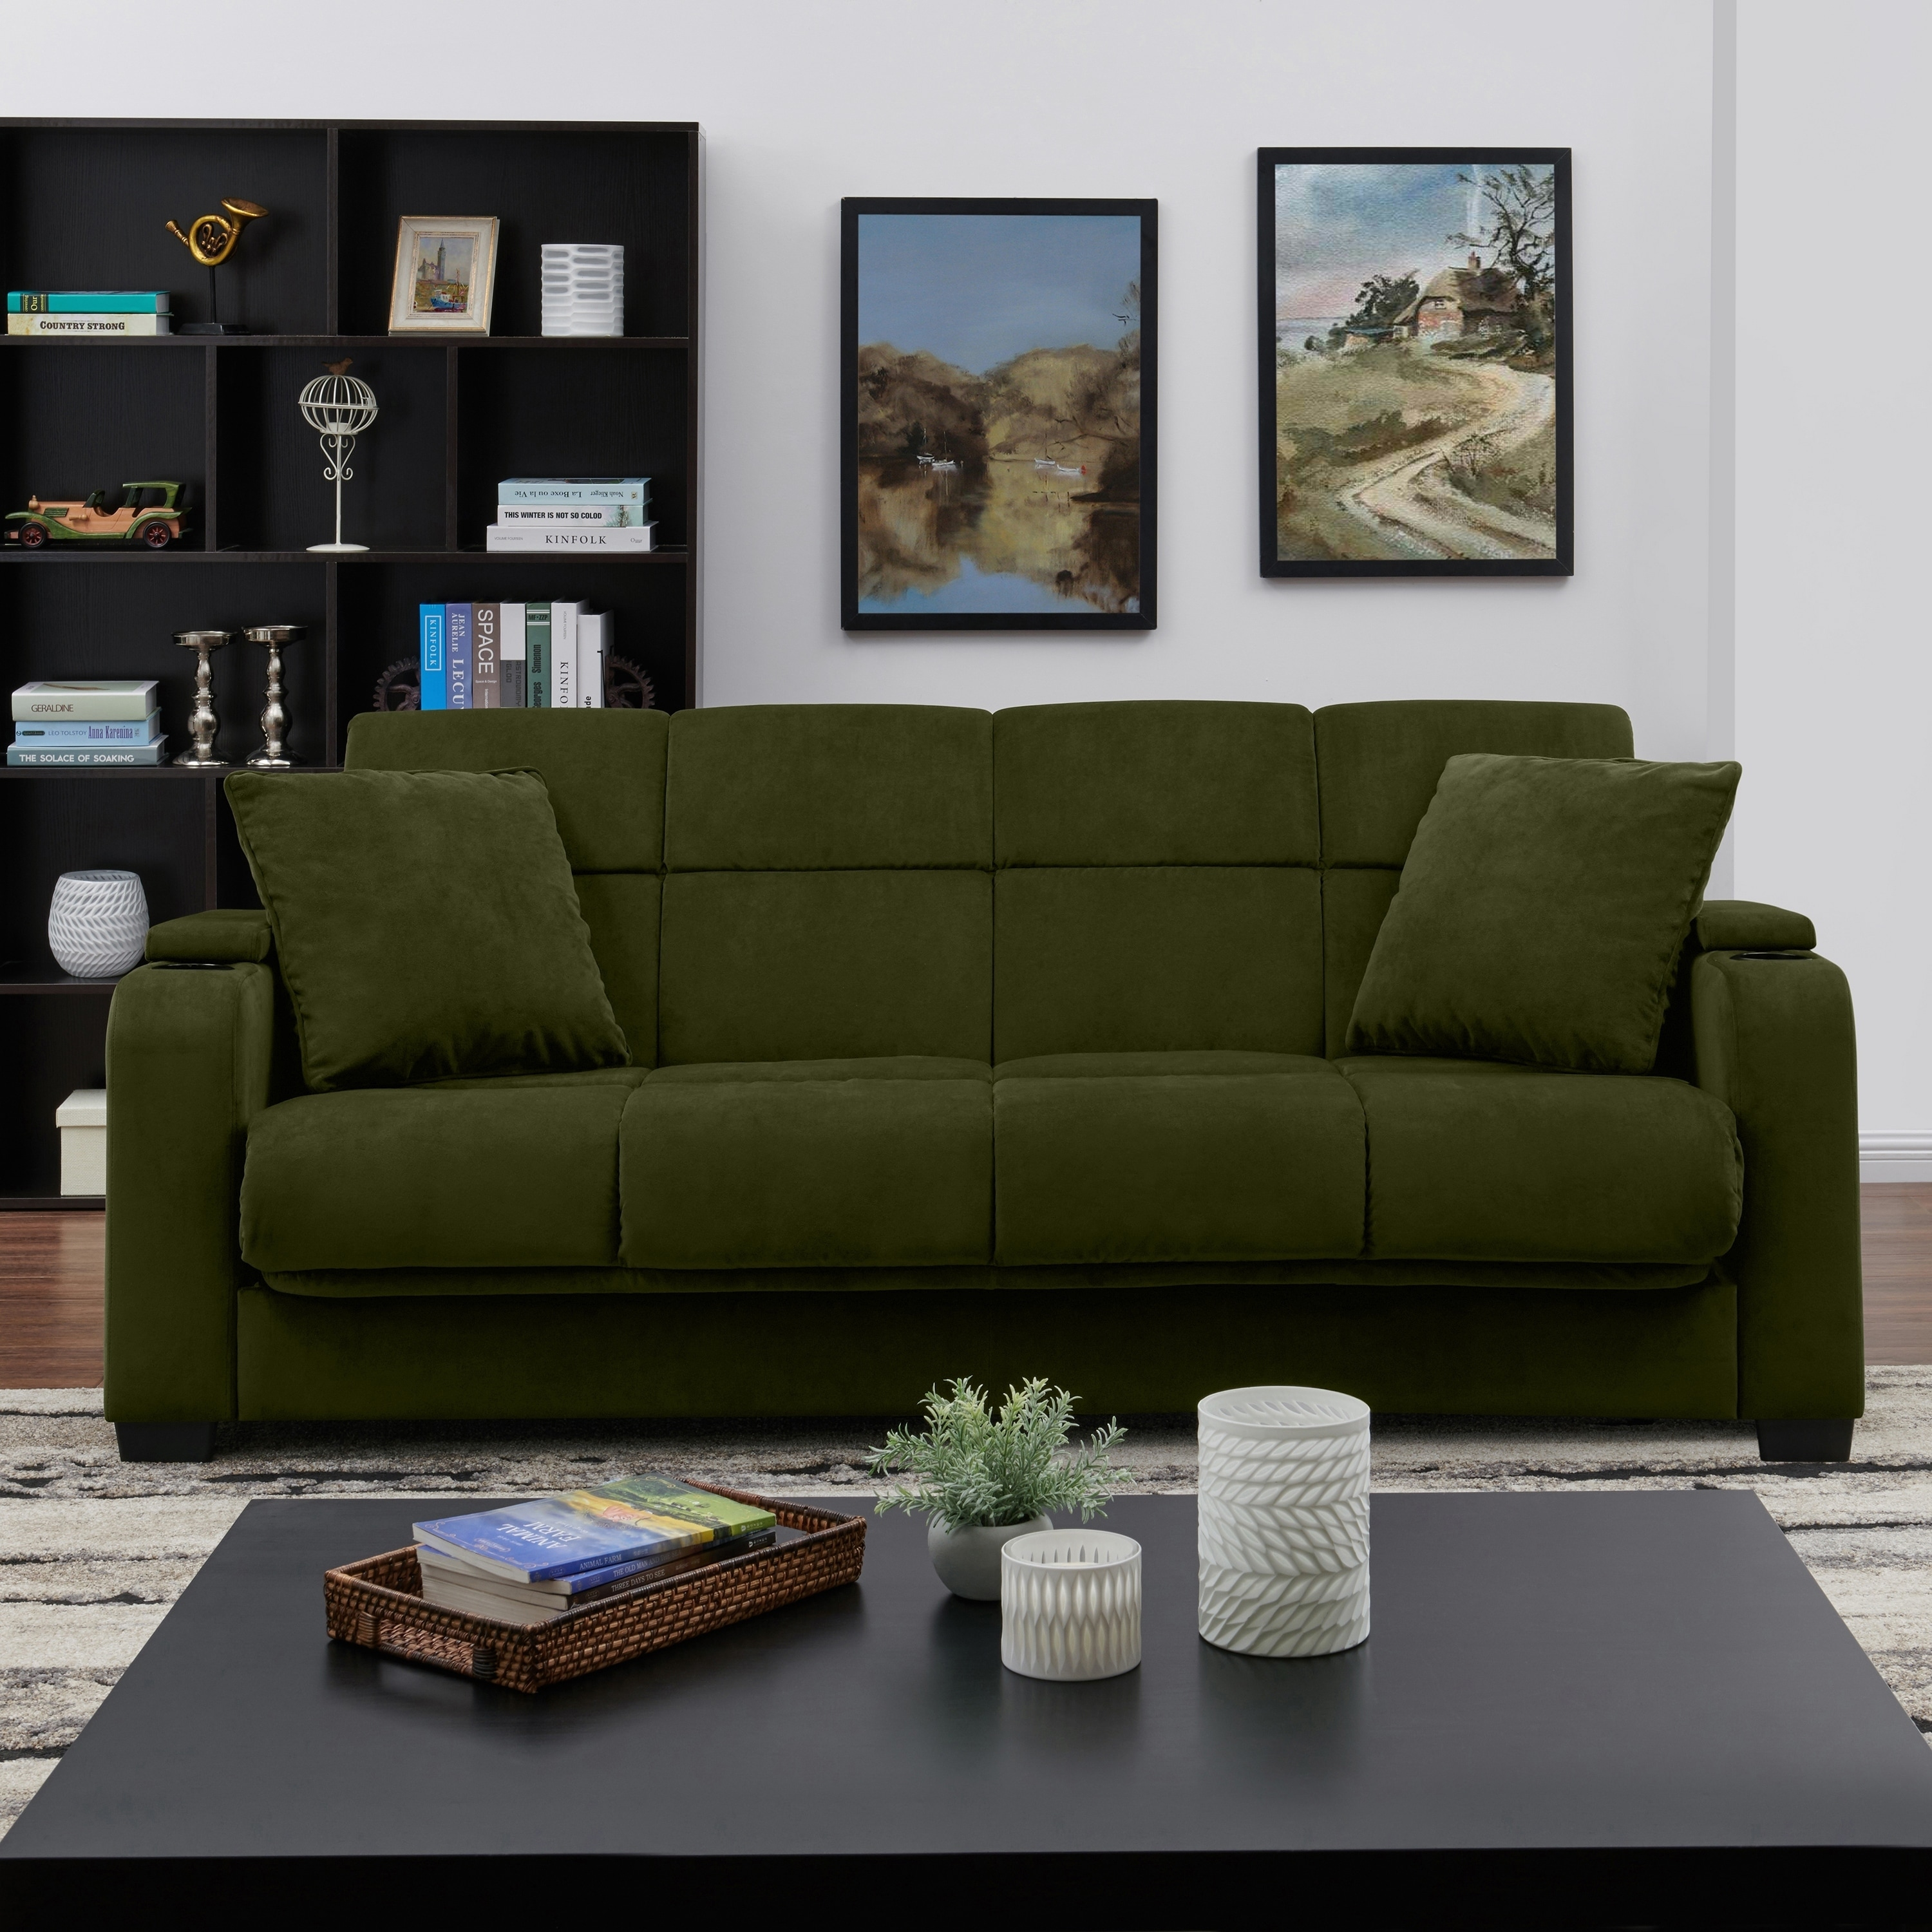 Living Room Sofa With Storage: Handy Living Sophia Storage Arm Convert-a-Couch Sleeper